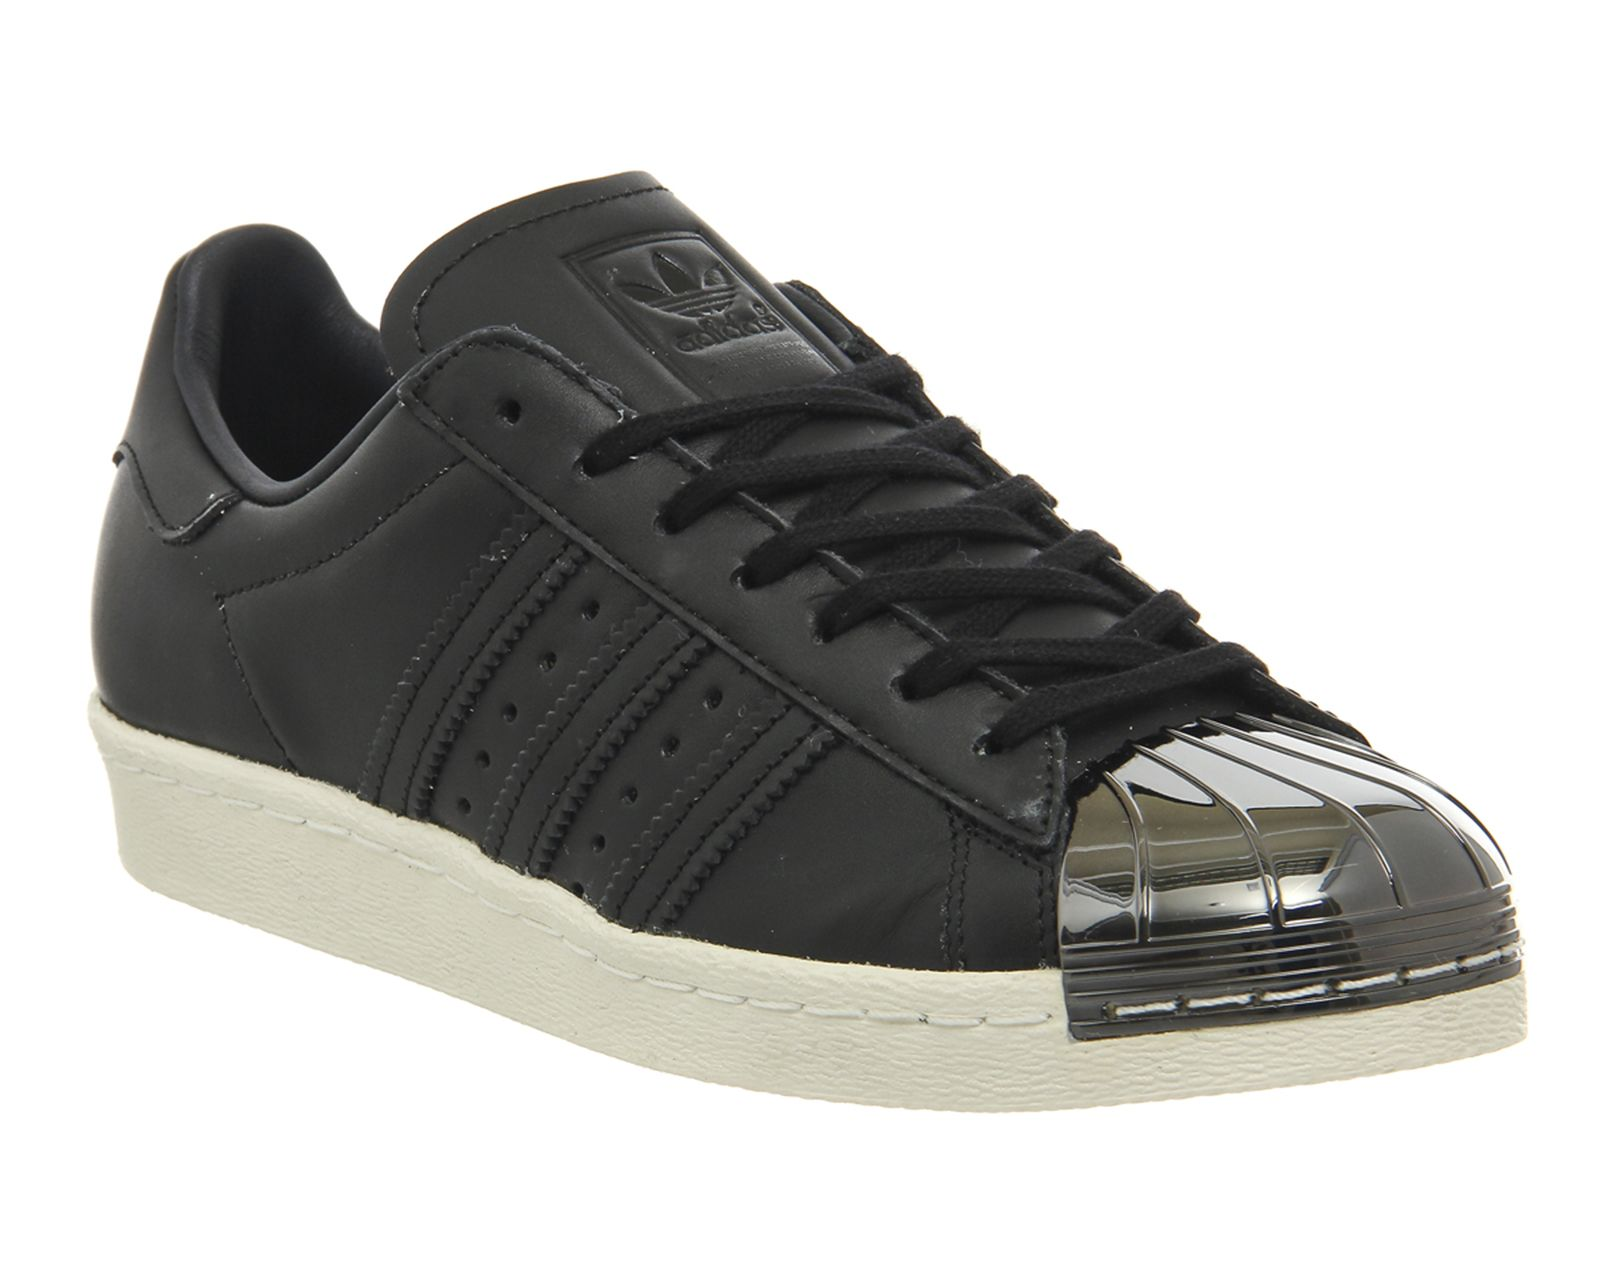 Adidas Superstar 80's Metal Toe Trainers Black White Pewter Metal Toe -  Exclusives